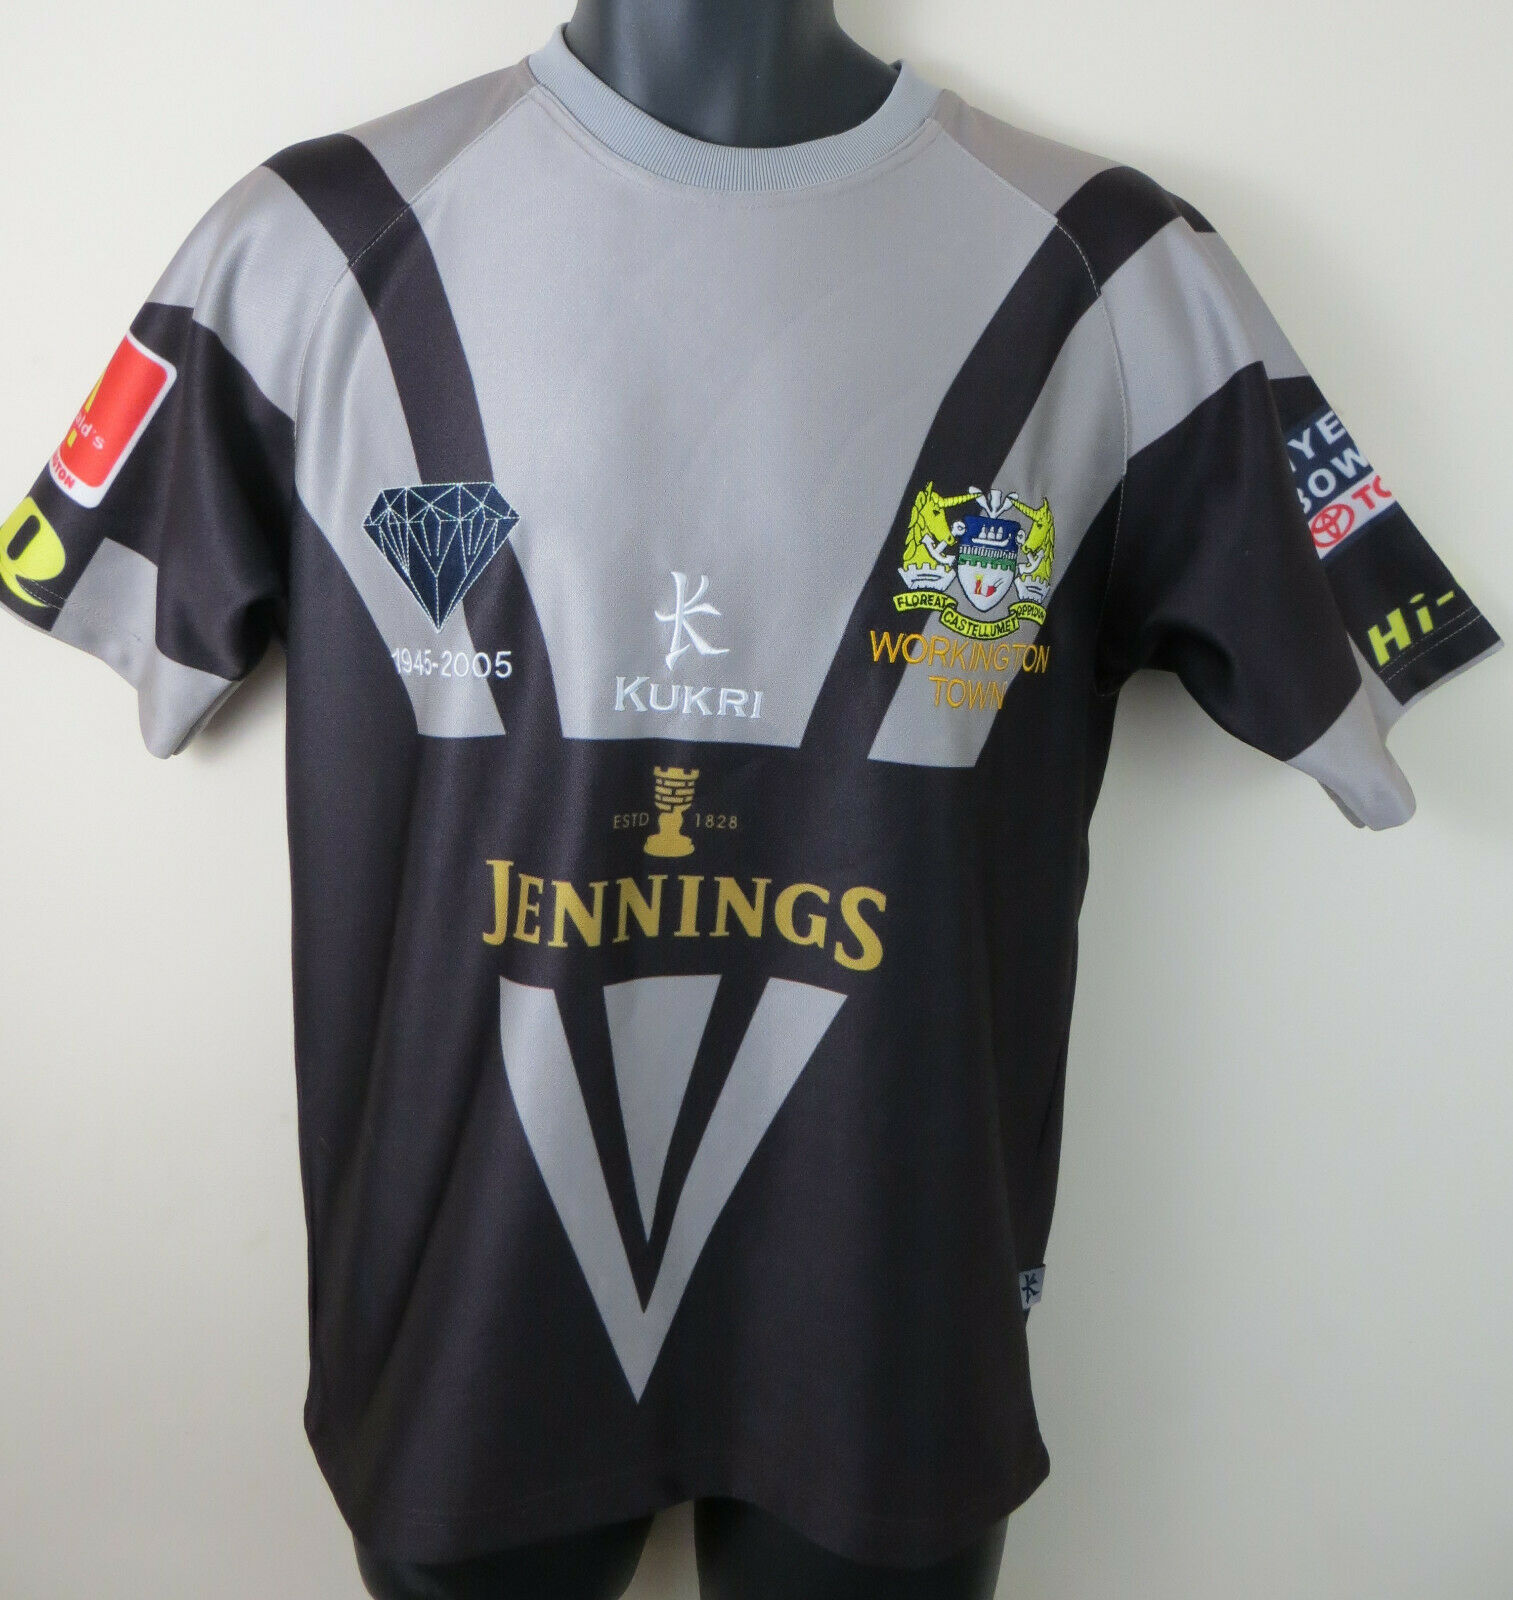 Kukri Workington Town Rugby League 1945-2005 Shirt Jersey RLFC Small S 38